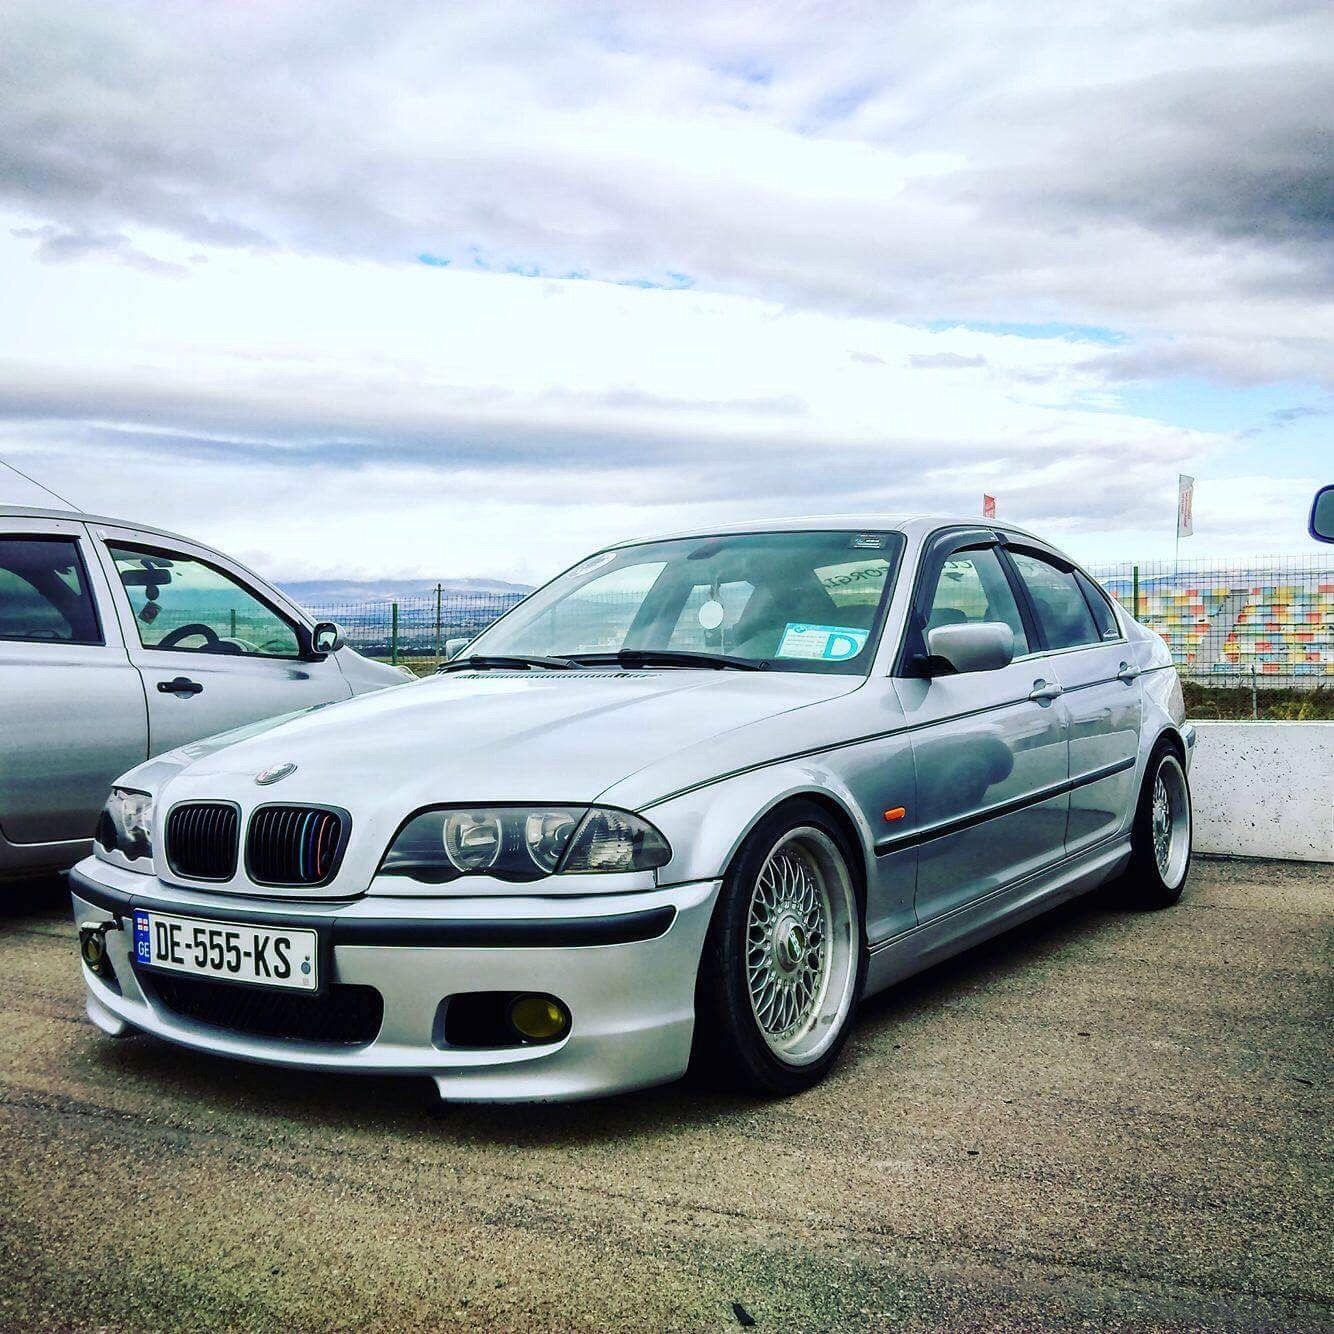 Dappers Dapper Low Bmw Bmwe46 E46 Bbs Bbsrc Bbsrc090 320 Blistein